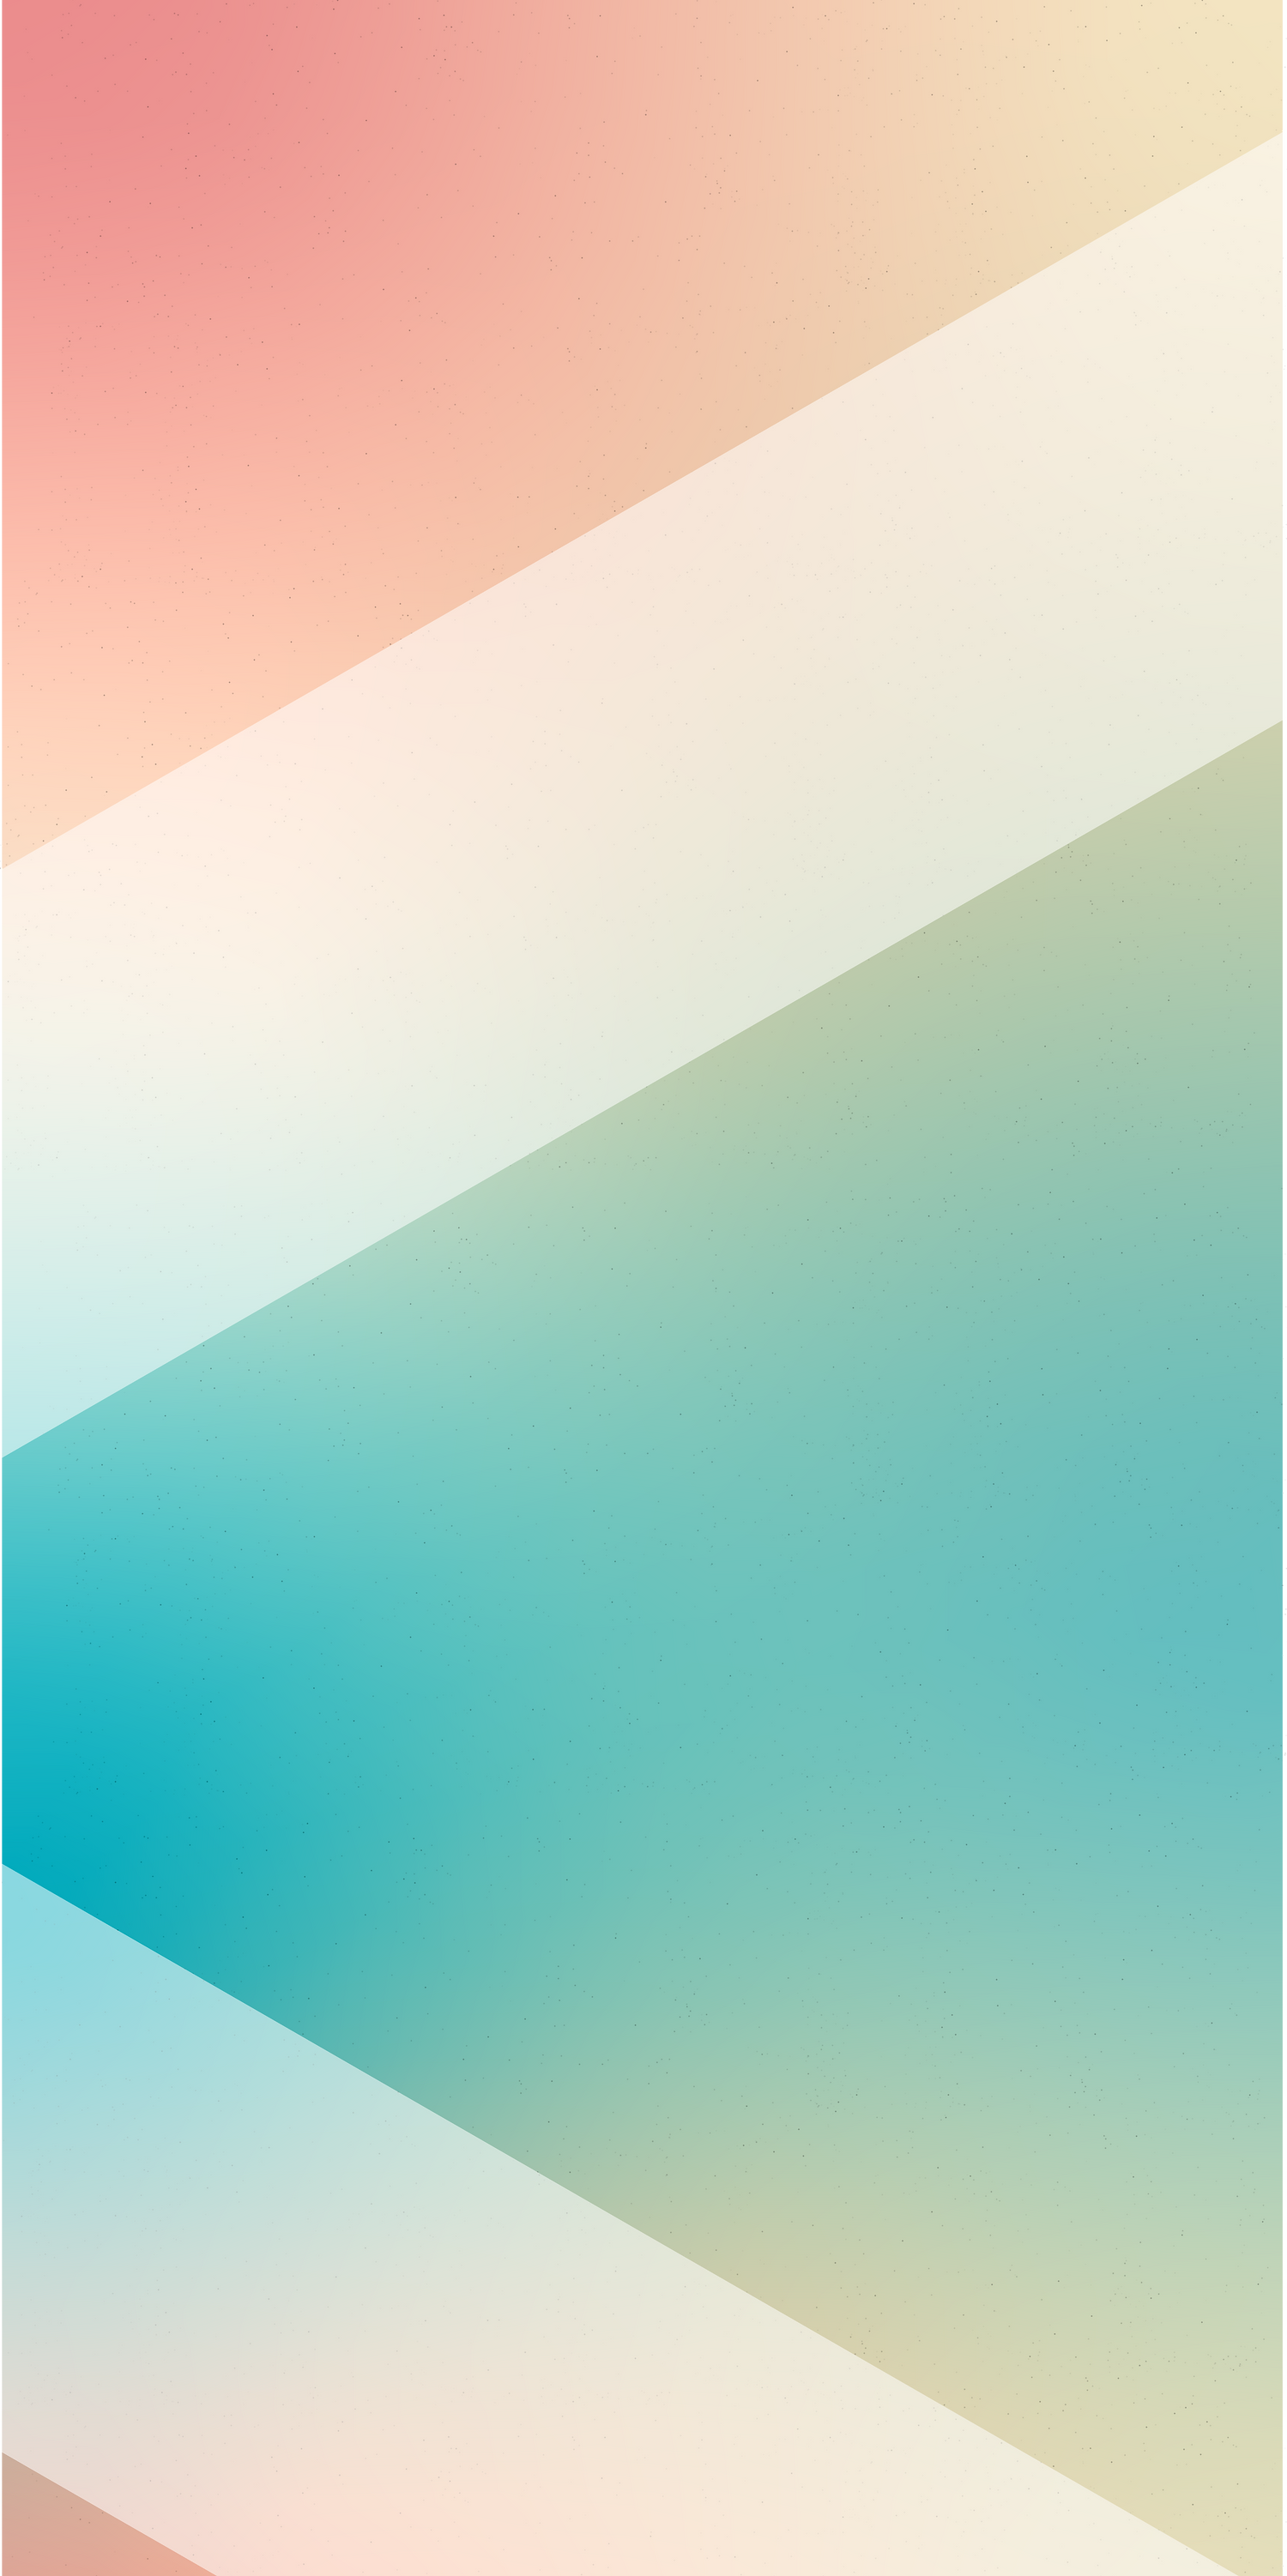 innexme-web_background-01-01-01.png